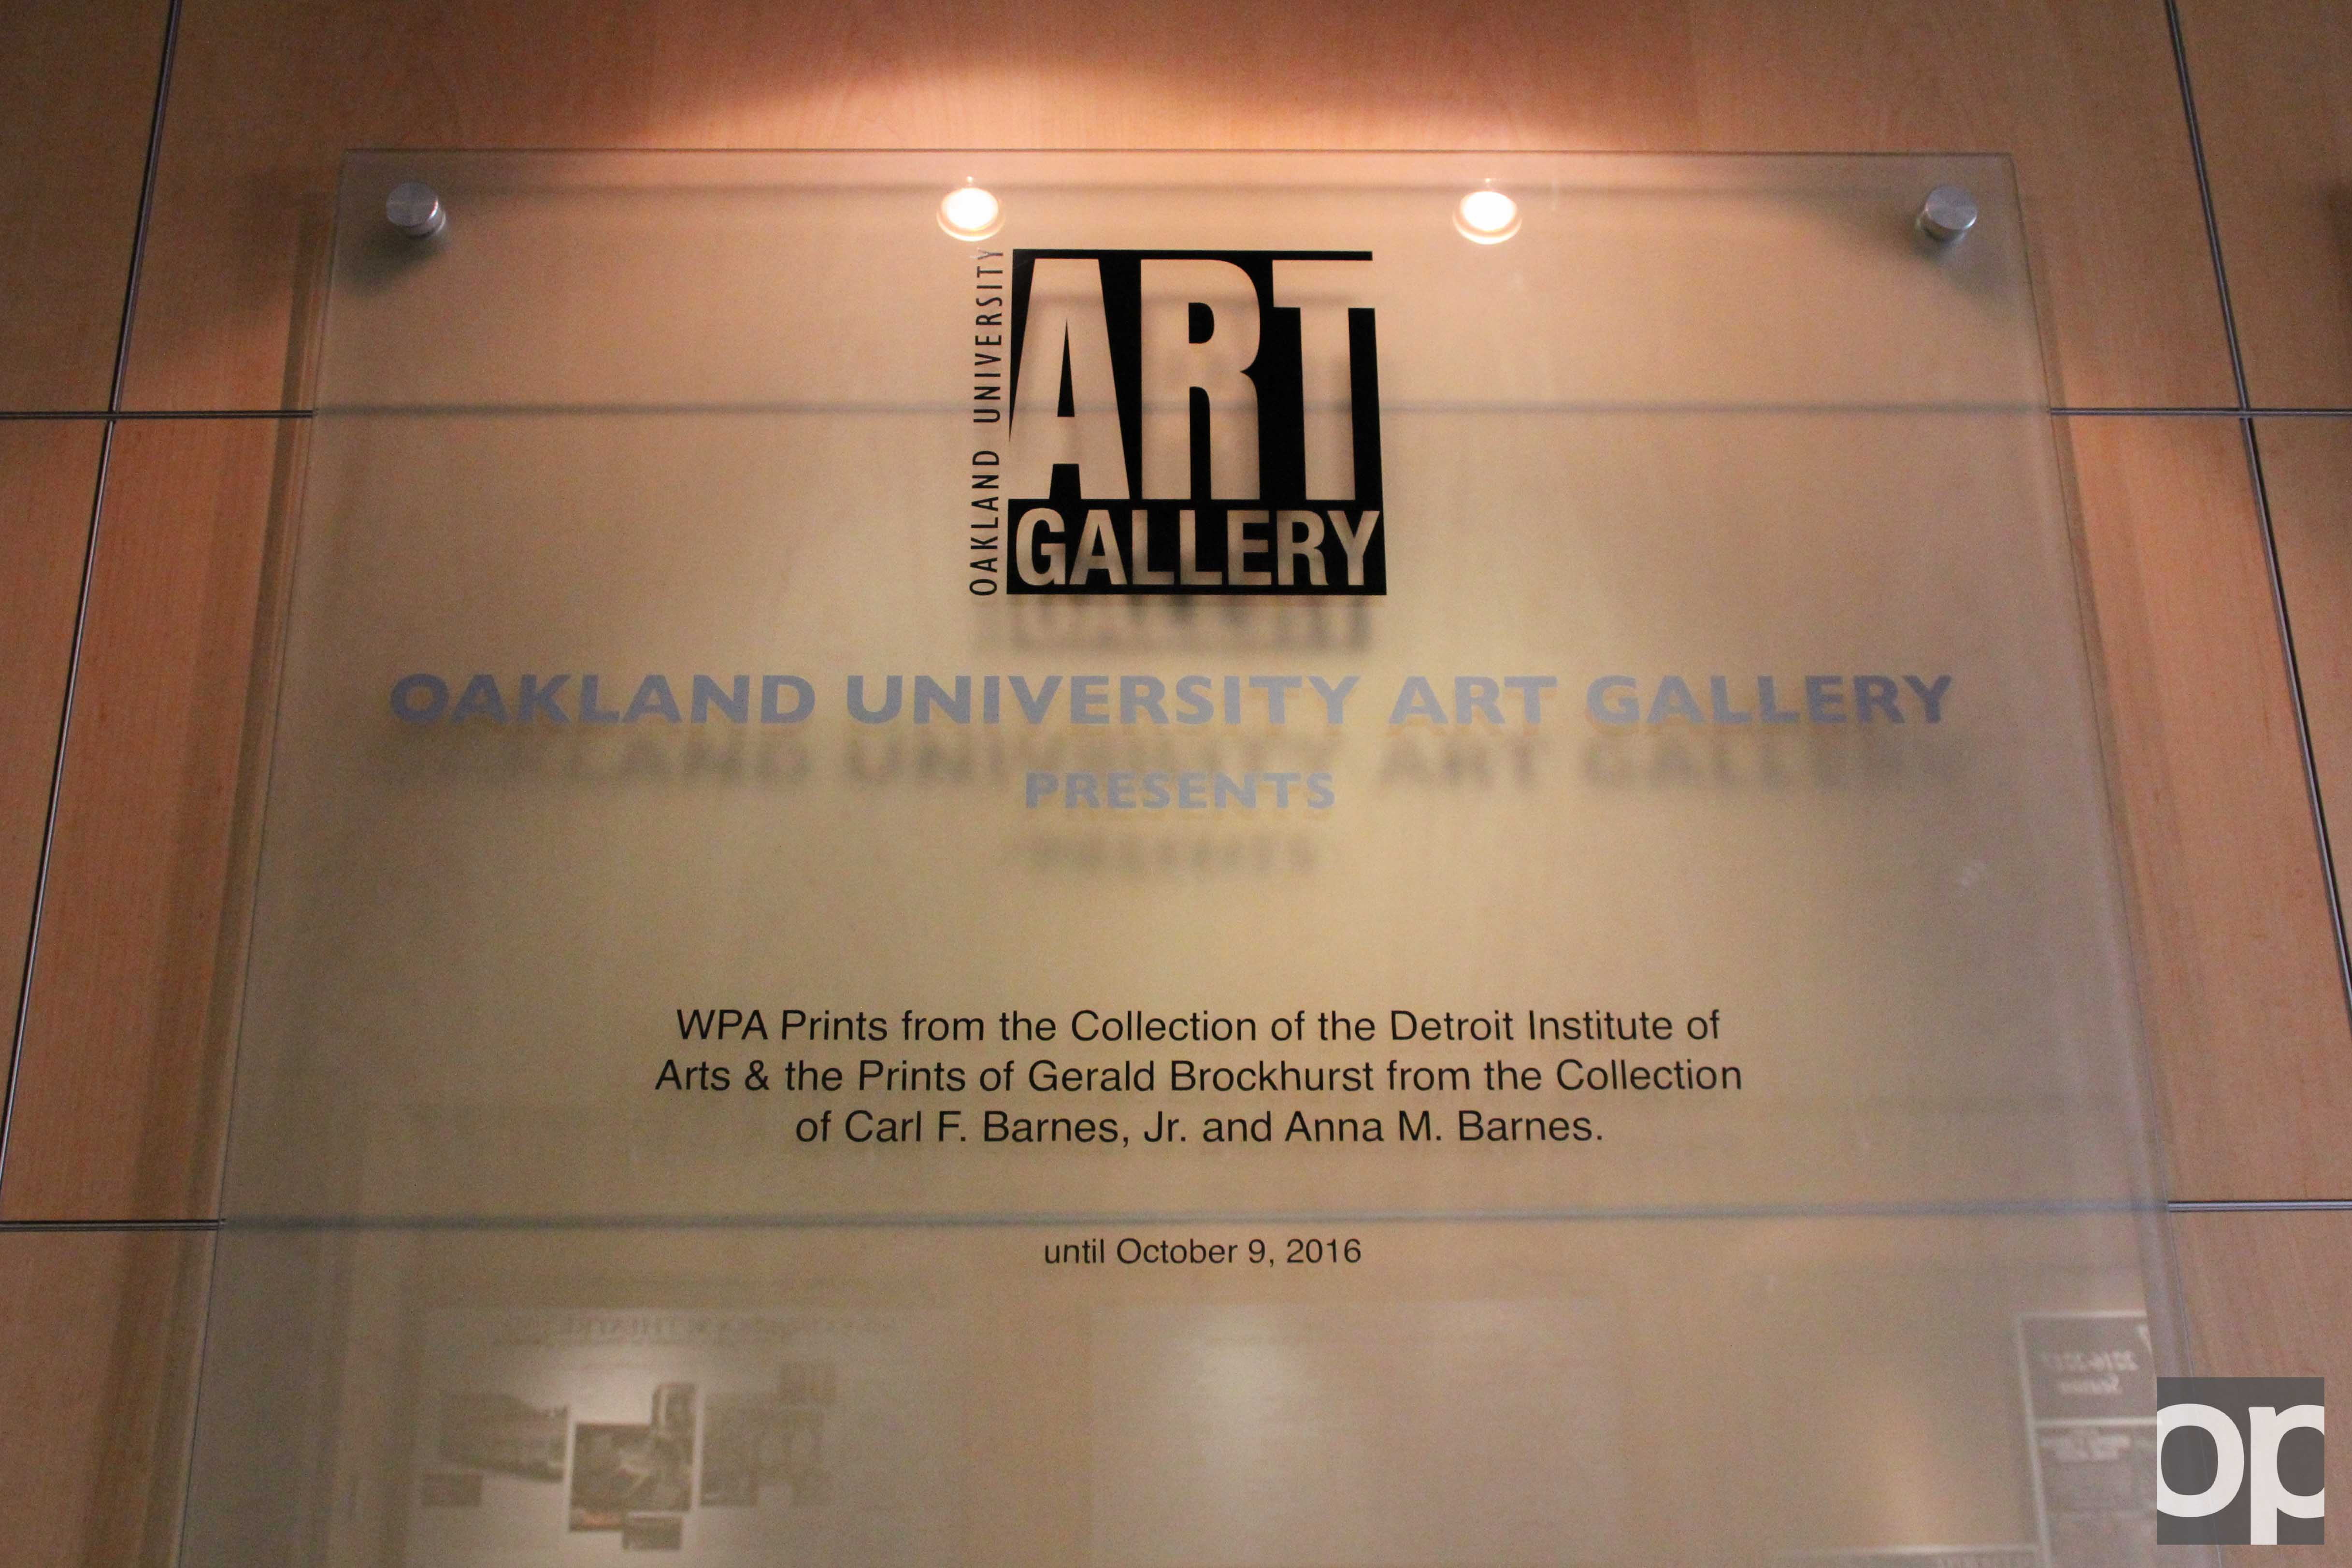 The exhibition will be on display from Sept. 9 to Oct. 9 for anyone interested to explore.